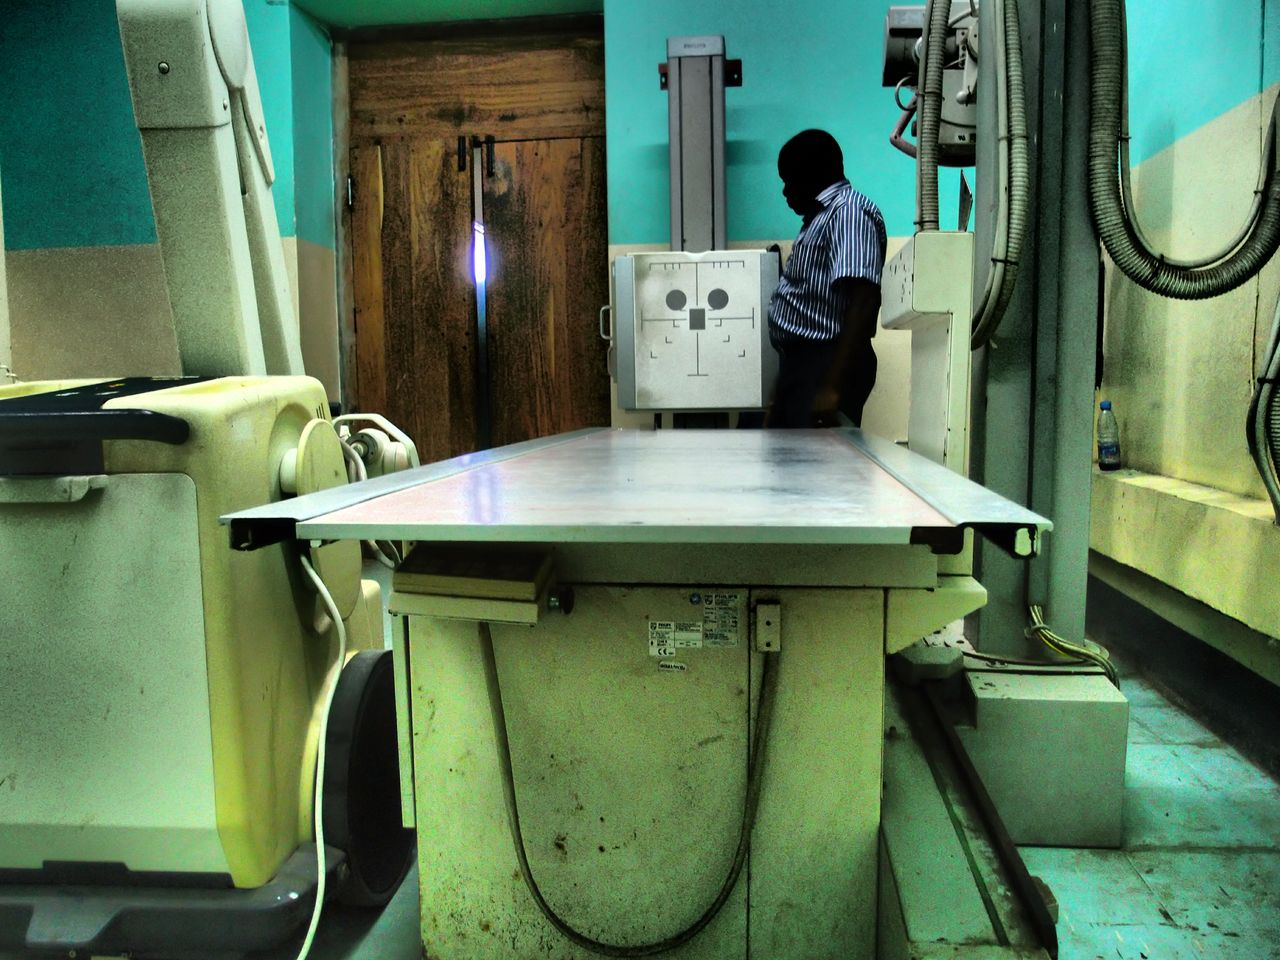 Keeping it running, keeping it used: MED International is working to build Zanzibari hospitals' capacity for managing medical equipment — maintaining it and repairing it it it breaks under heavy use.